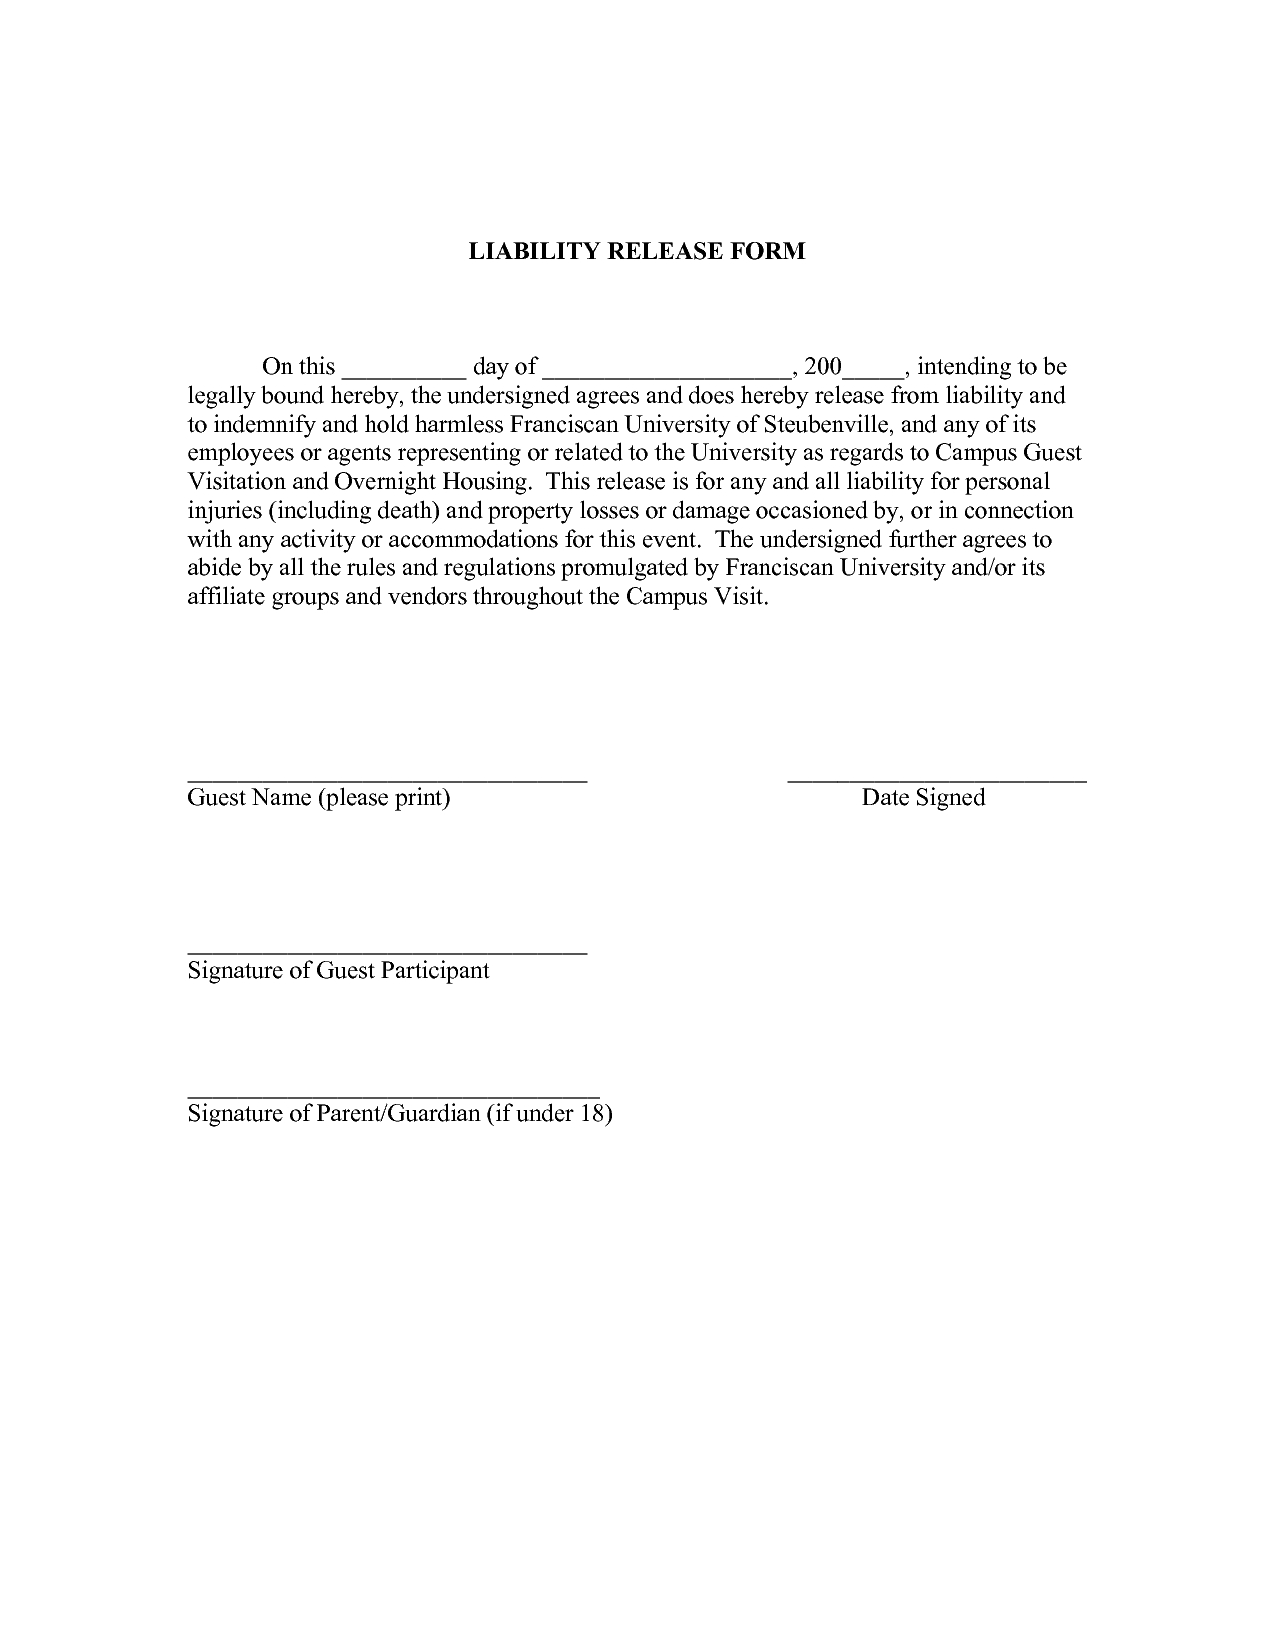 Release Of Liability Letter Template - Liability Release forms by Jacobyshaddix Liability Release Letter